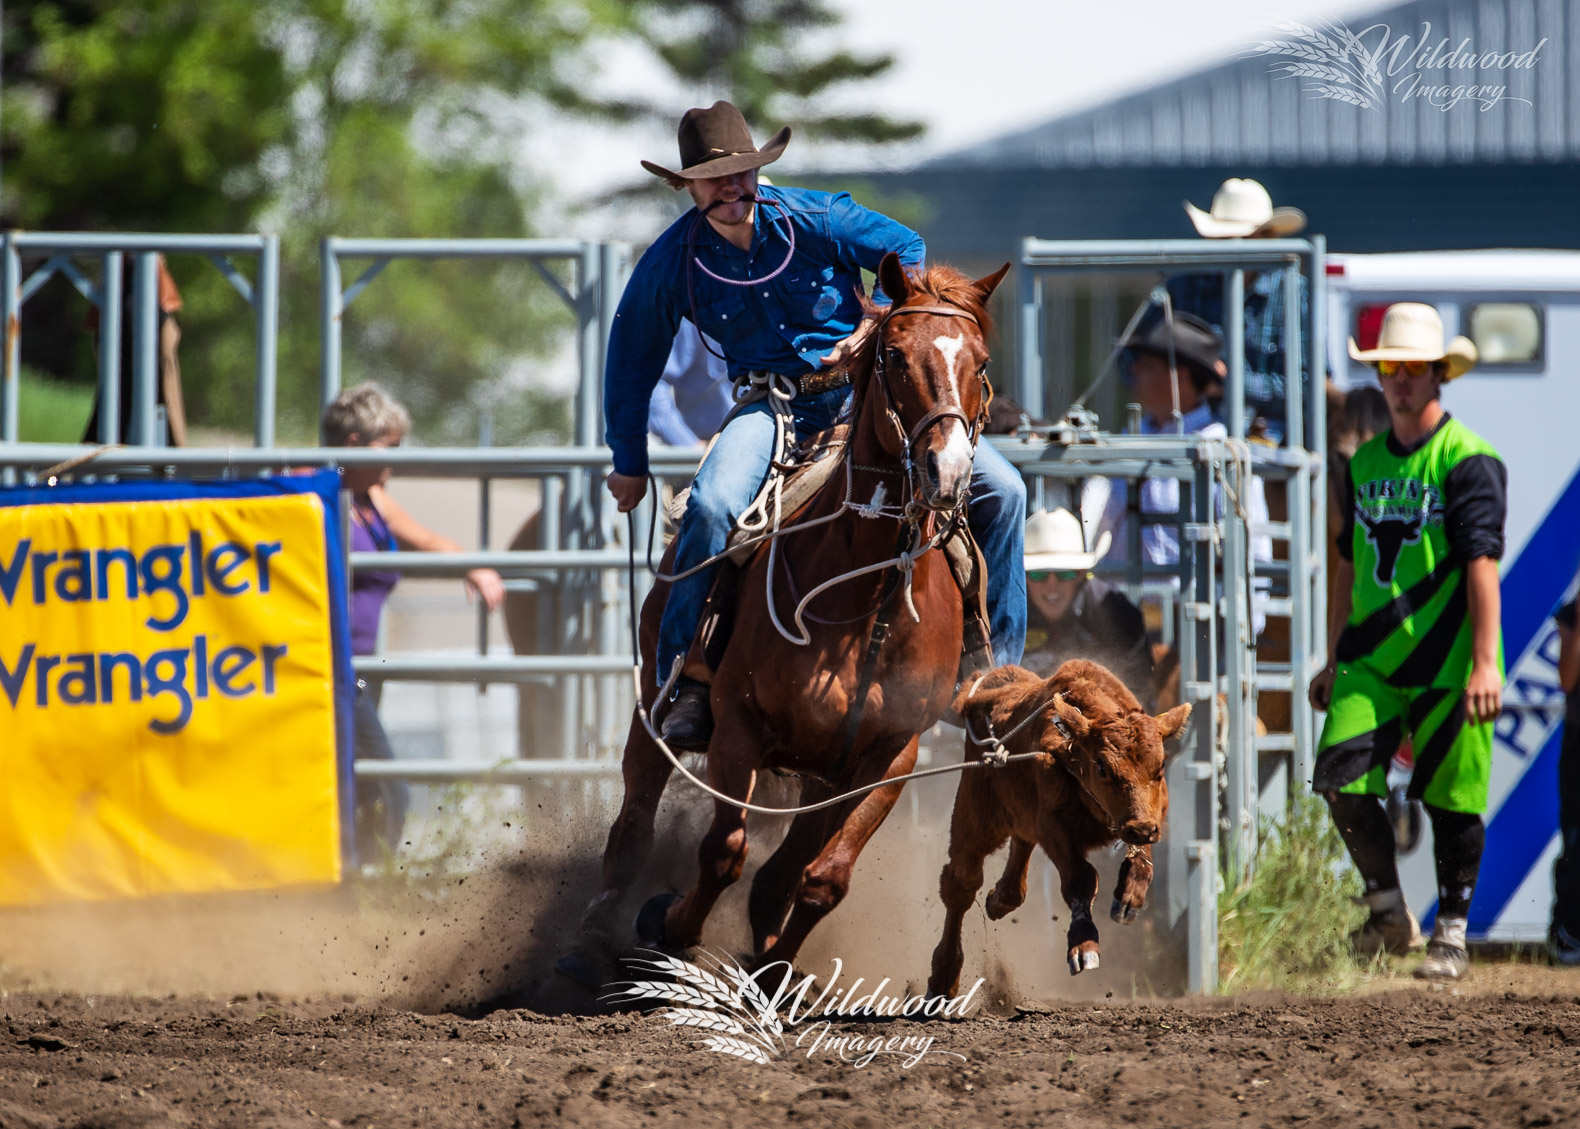 competing at the 2018 Rainmaker Rodeo Saturday Perf in St.Albert, Alberta, Canada on May 26, 2018. Photo taken by Wildwood Imagery / Chantelle Bowman.